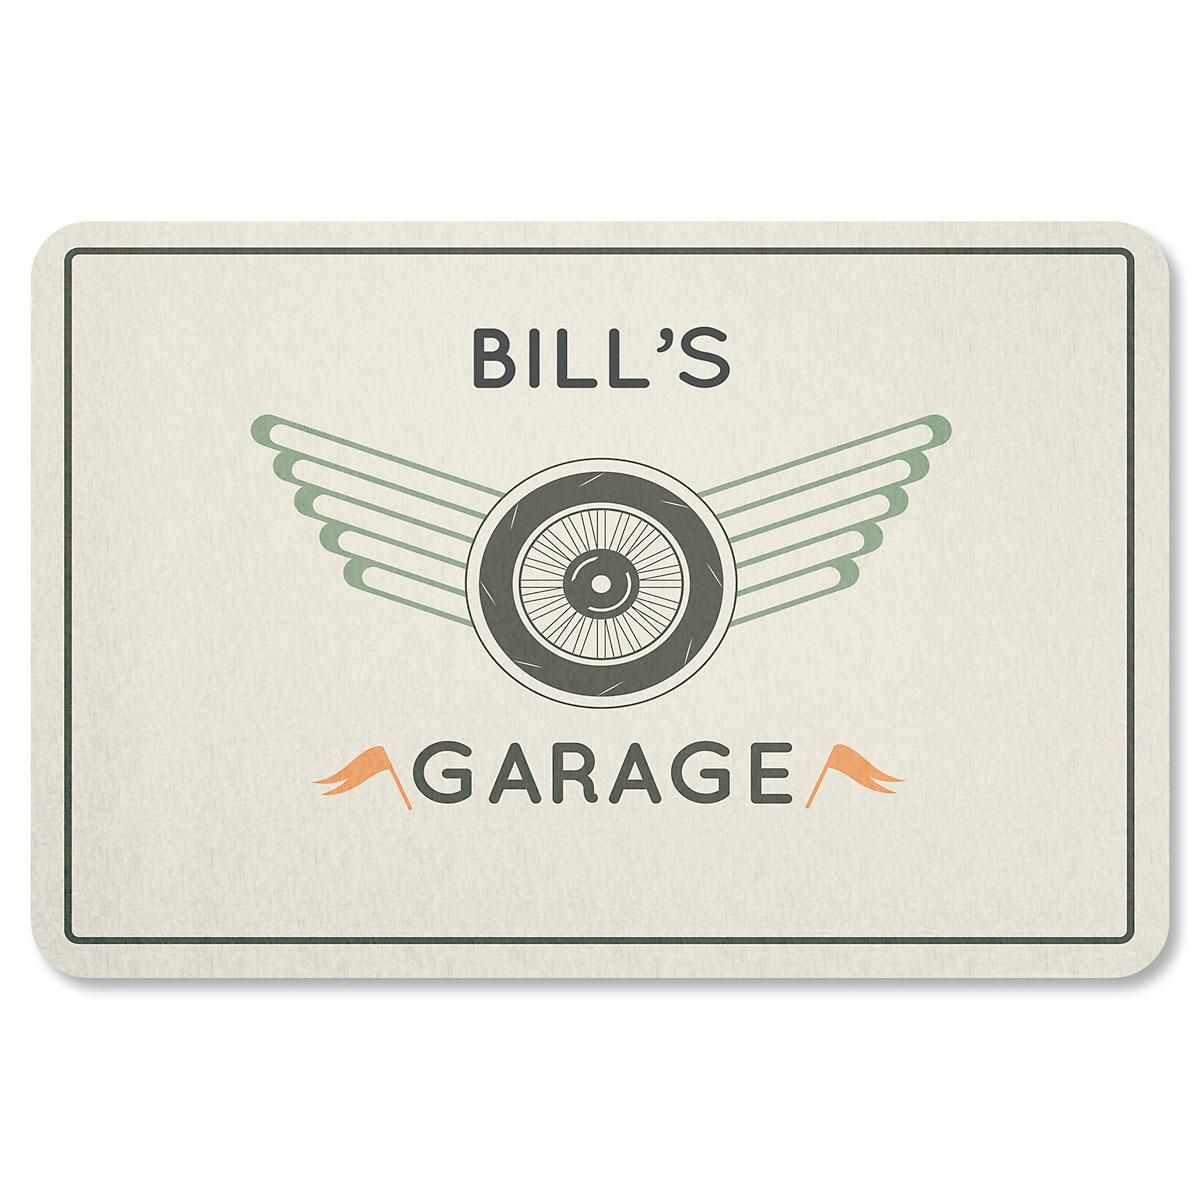 Tire and Wheel Garage Personalized Doormat